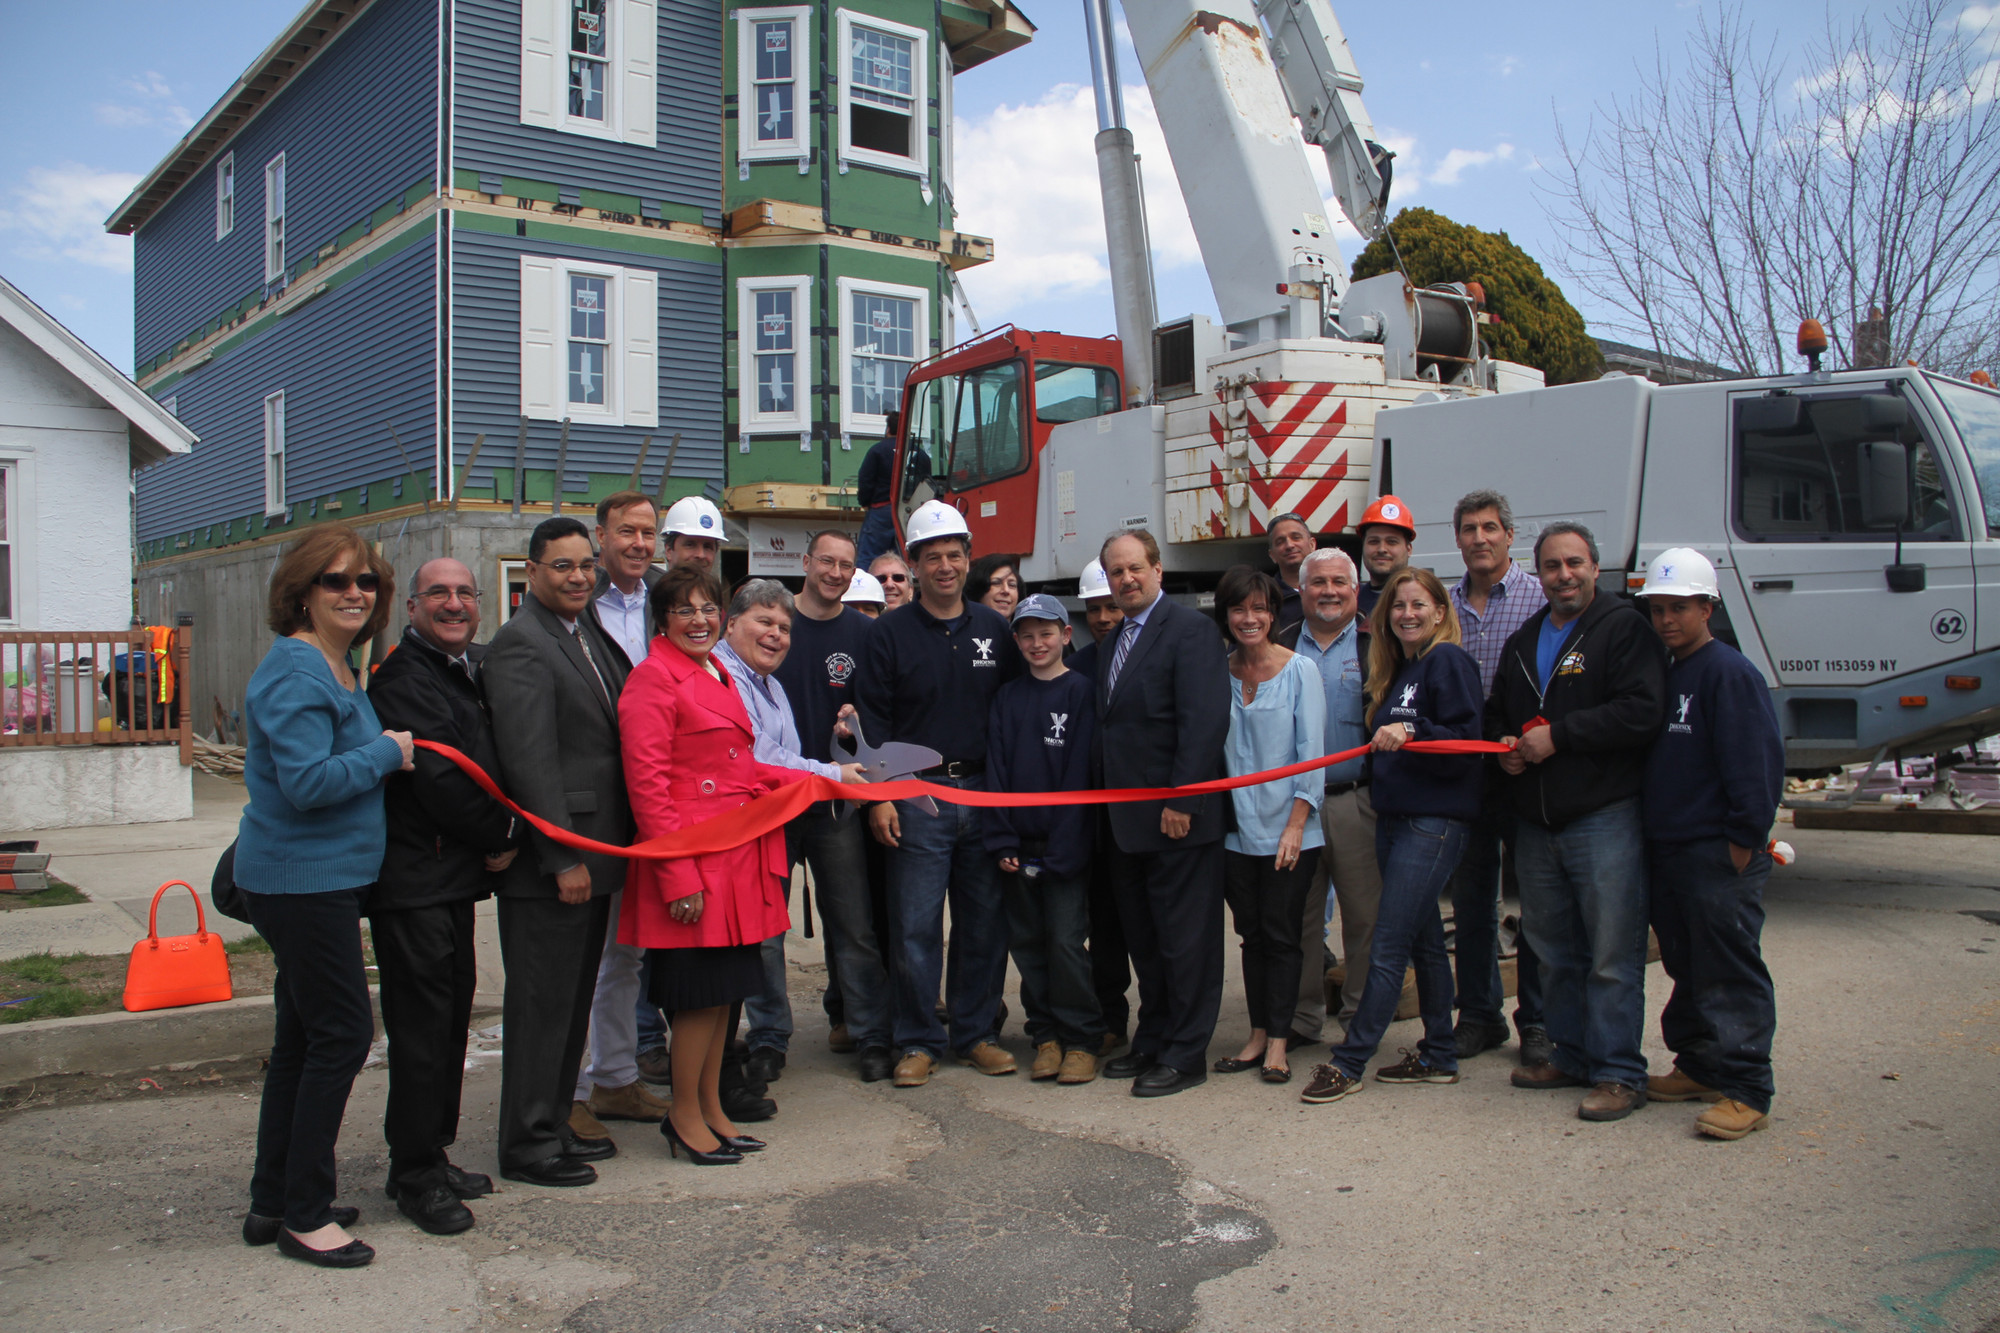 Homeowner Michael Seeman, eighth from left, cut the ribbon to mark the installation of his new home with the Chamber of Commerce and workers.